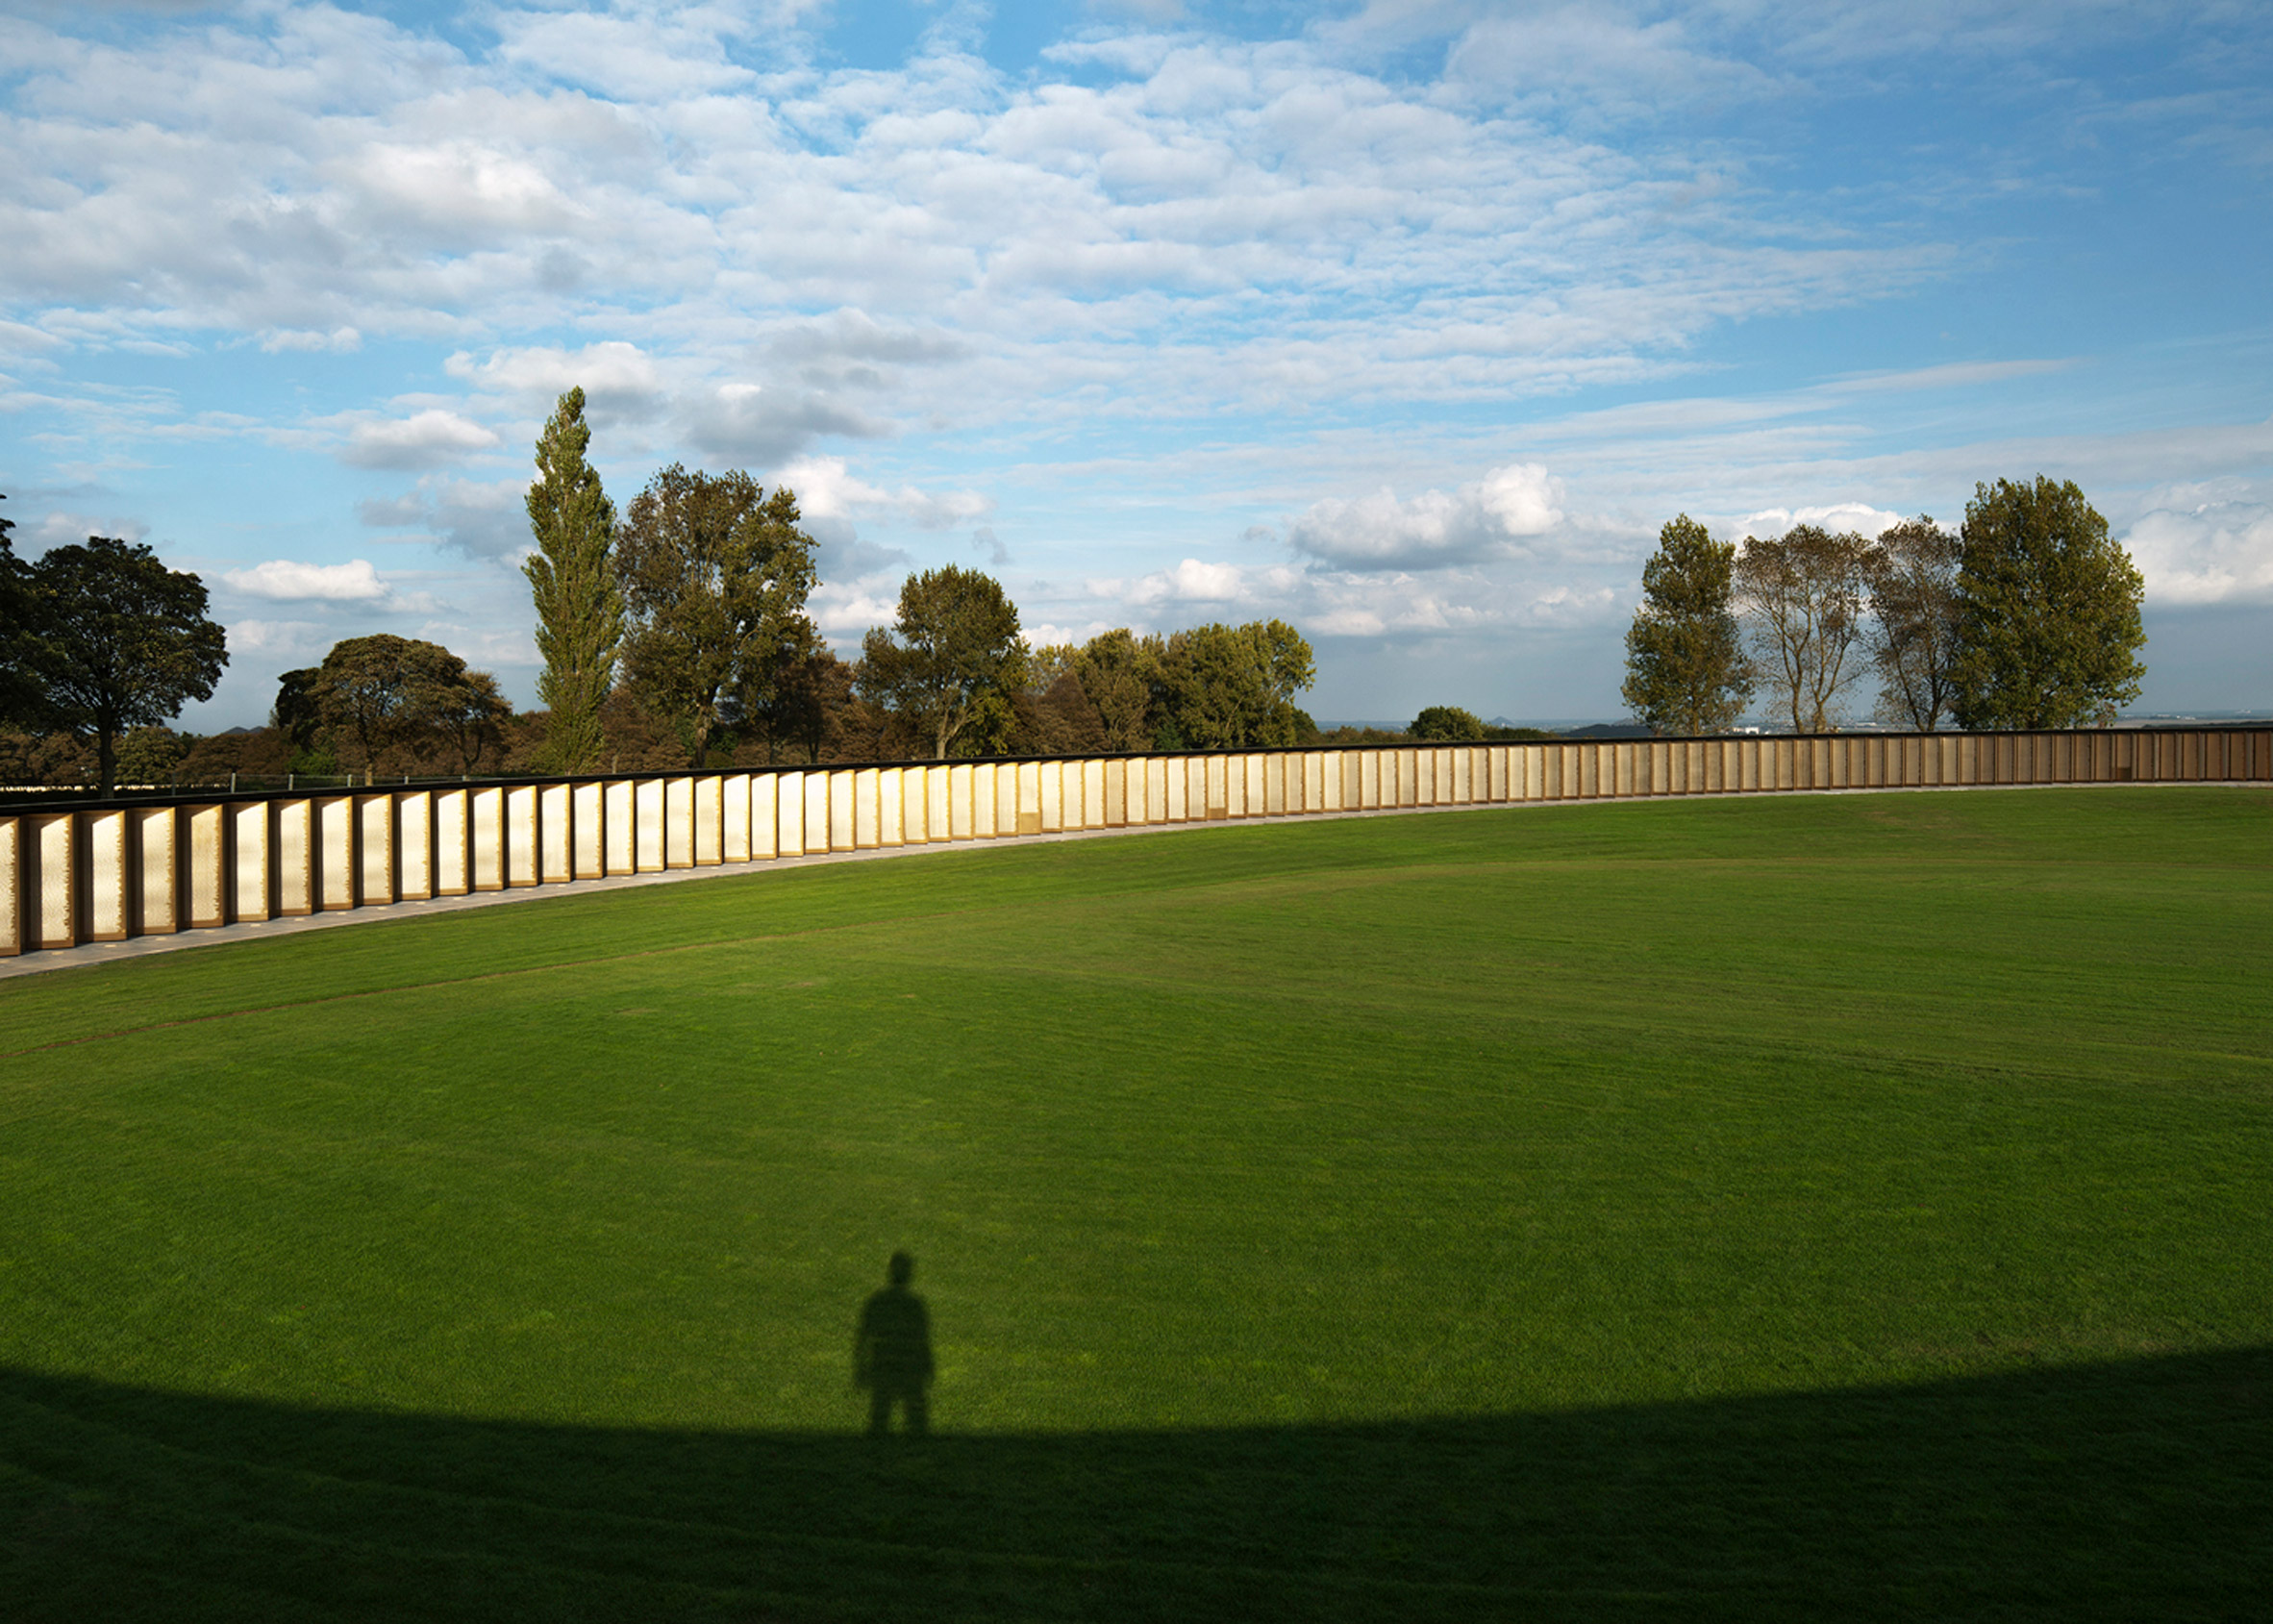 The Ring of Remembrance memorial by Agence d'architecture Philippe Prost. Photograph by Aitor Ortiz